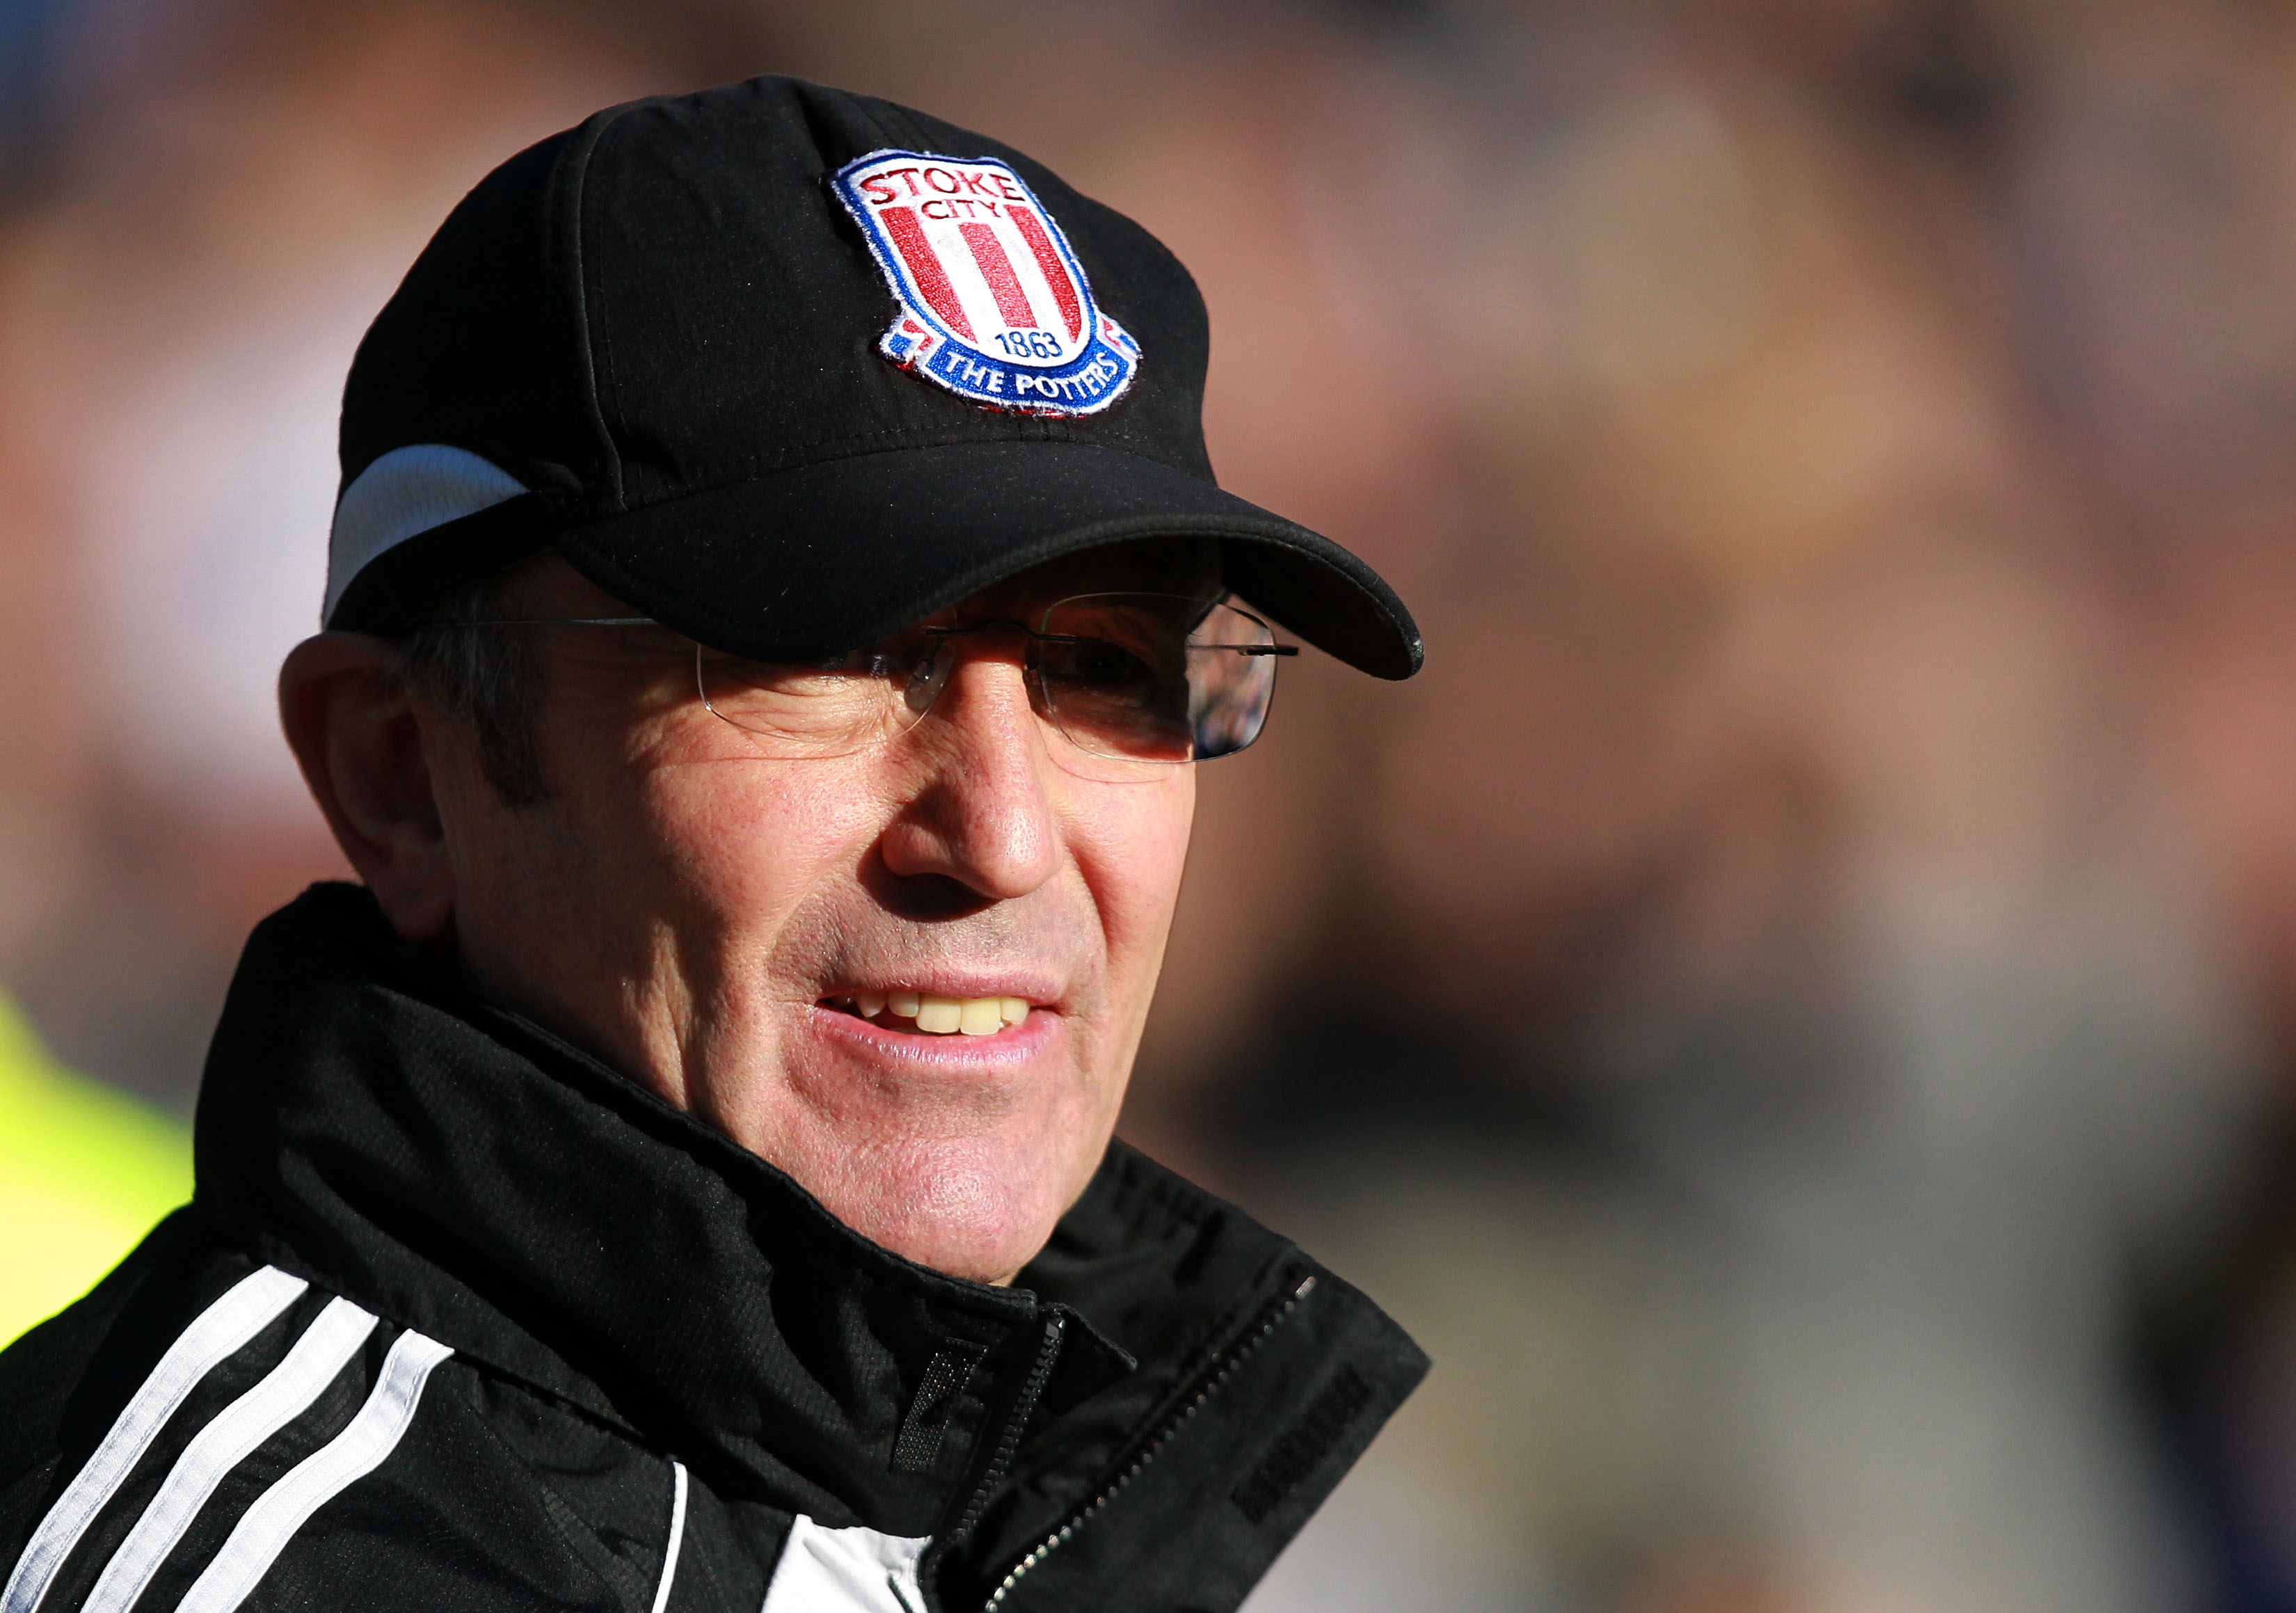 BIRMINGHAM, ENGLAND - FEBRUARY 12 :   Tony Pulis, Manager of Stoke City looks on prior to kick off during the Barclays Premier League match between Birmingham City and Stoke City at St Andrews on February 12, 2011 in Birmingham, England.  (Photo by Jan Kr